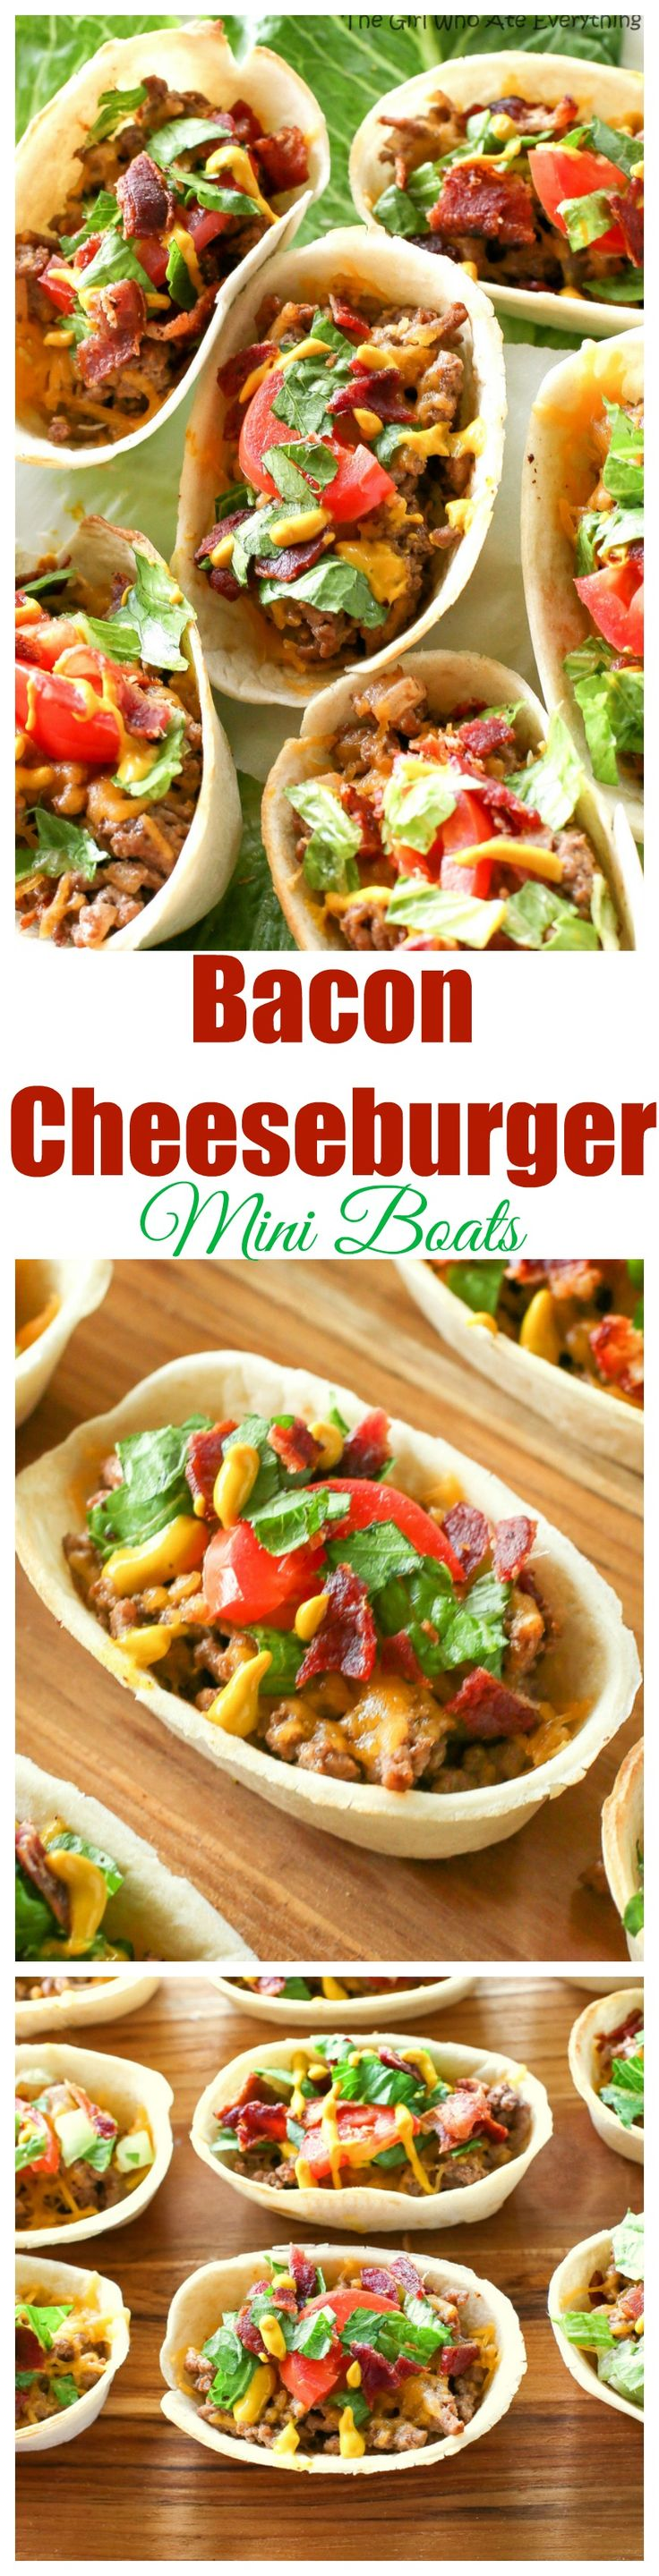 Bacon Cheeseburger Mini Boats